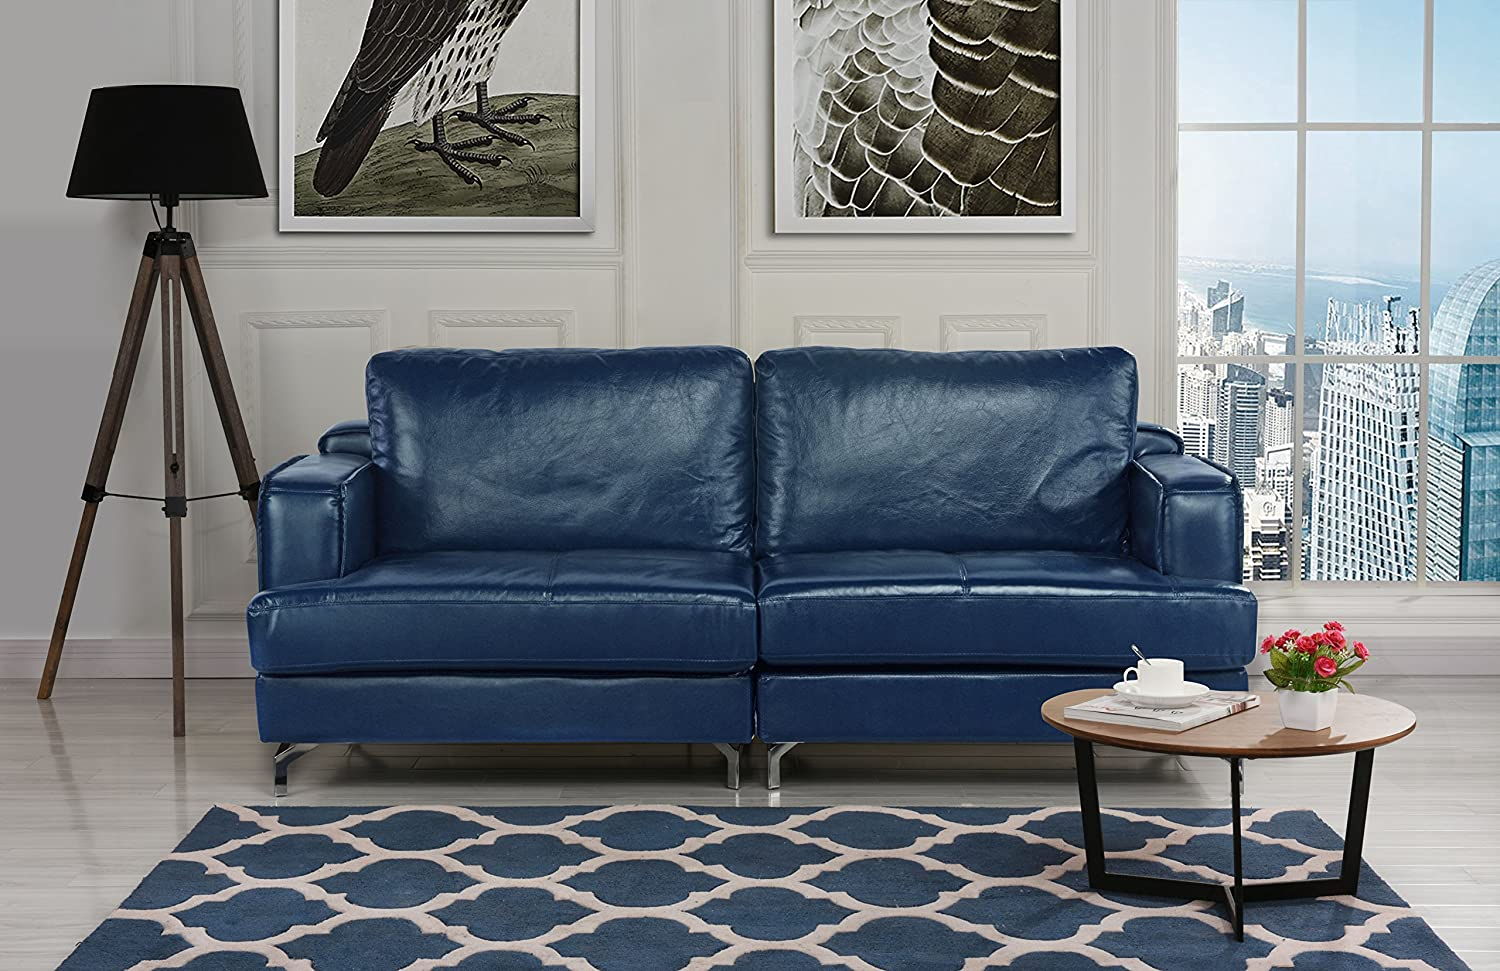 Amazon com ultra modern plush leather living room sofa blue kitchen dining